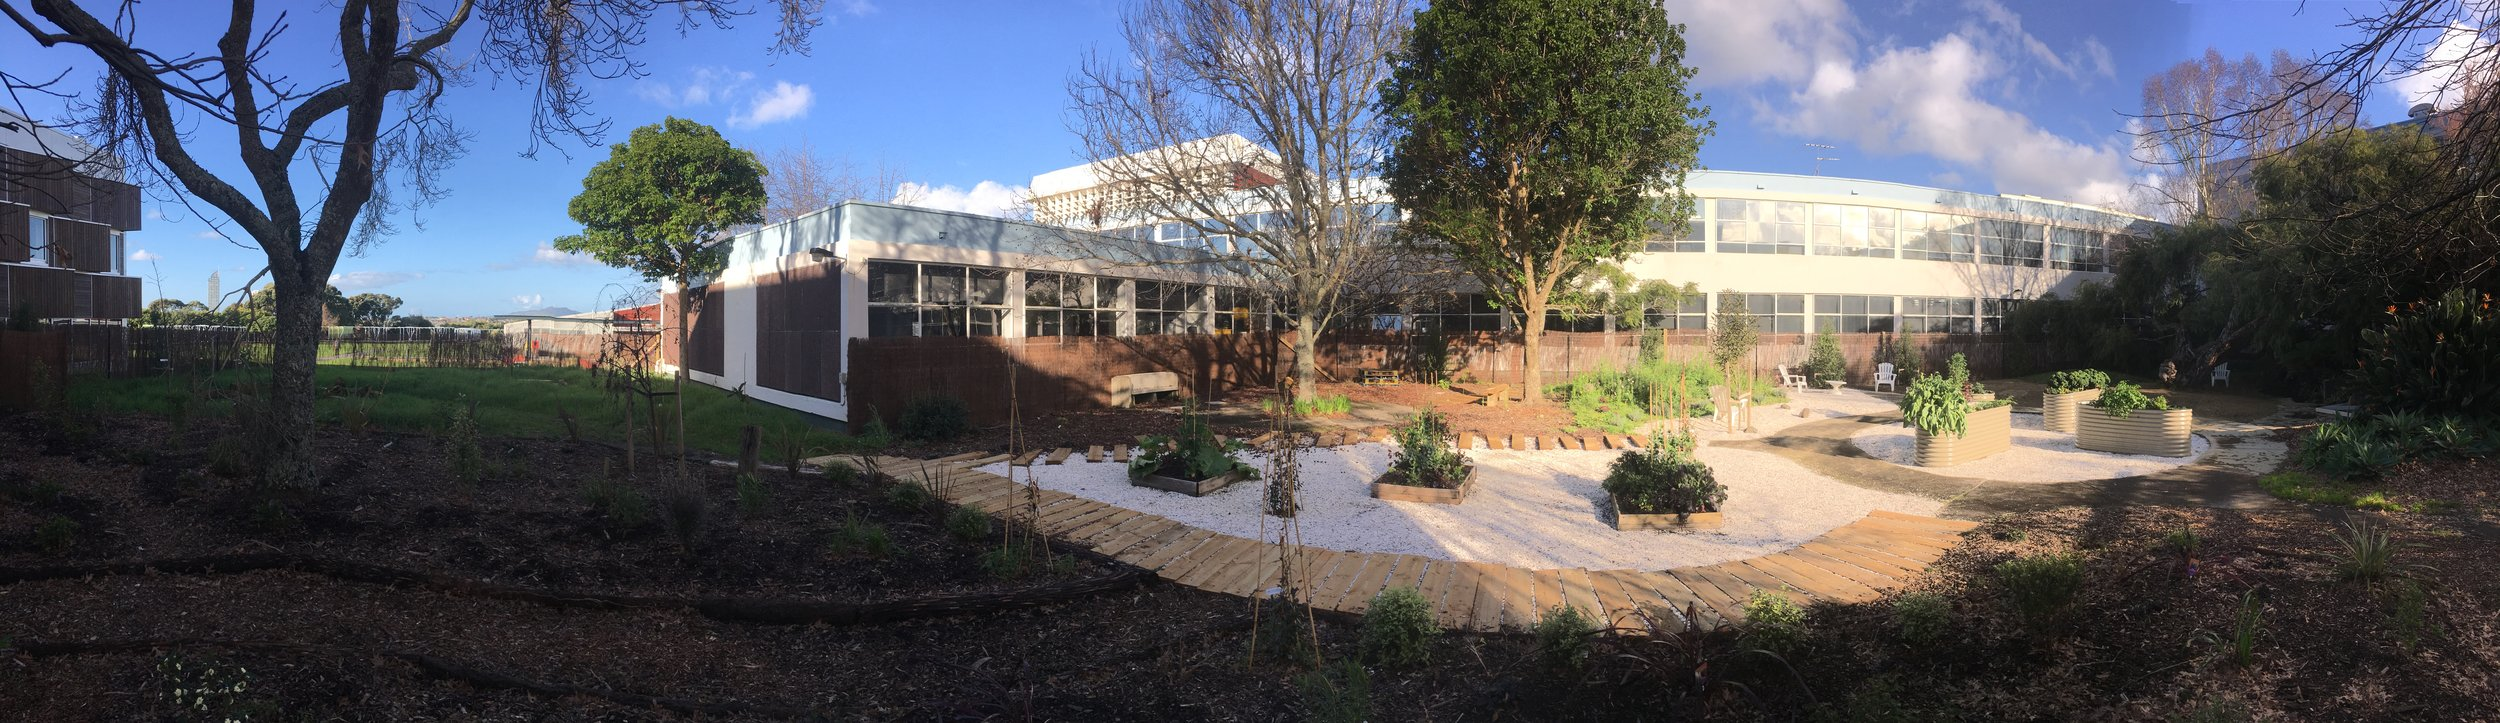 Souter-Brown has created a sensory garden on site at Auckland University of Technology's Northcote campus.